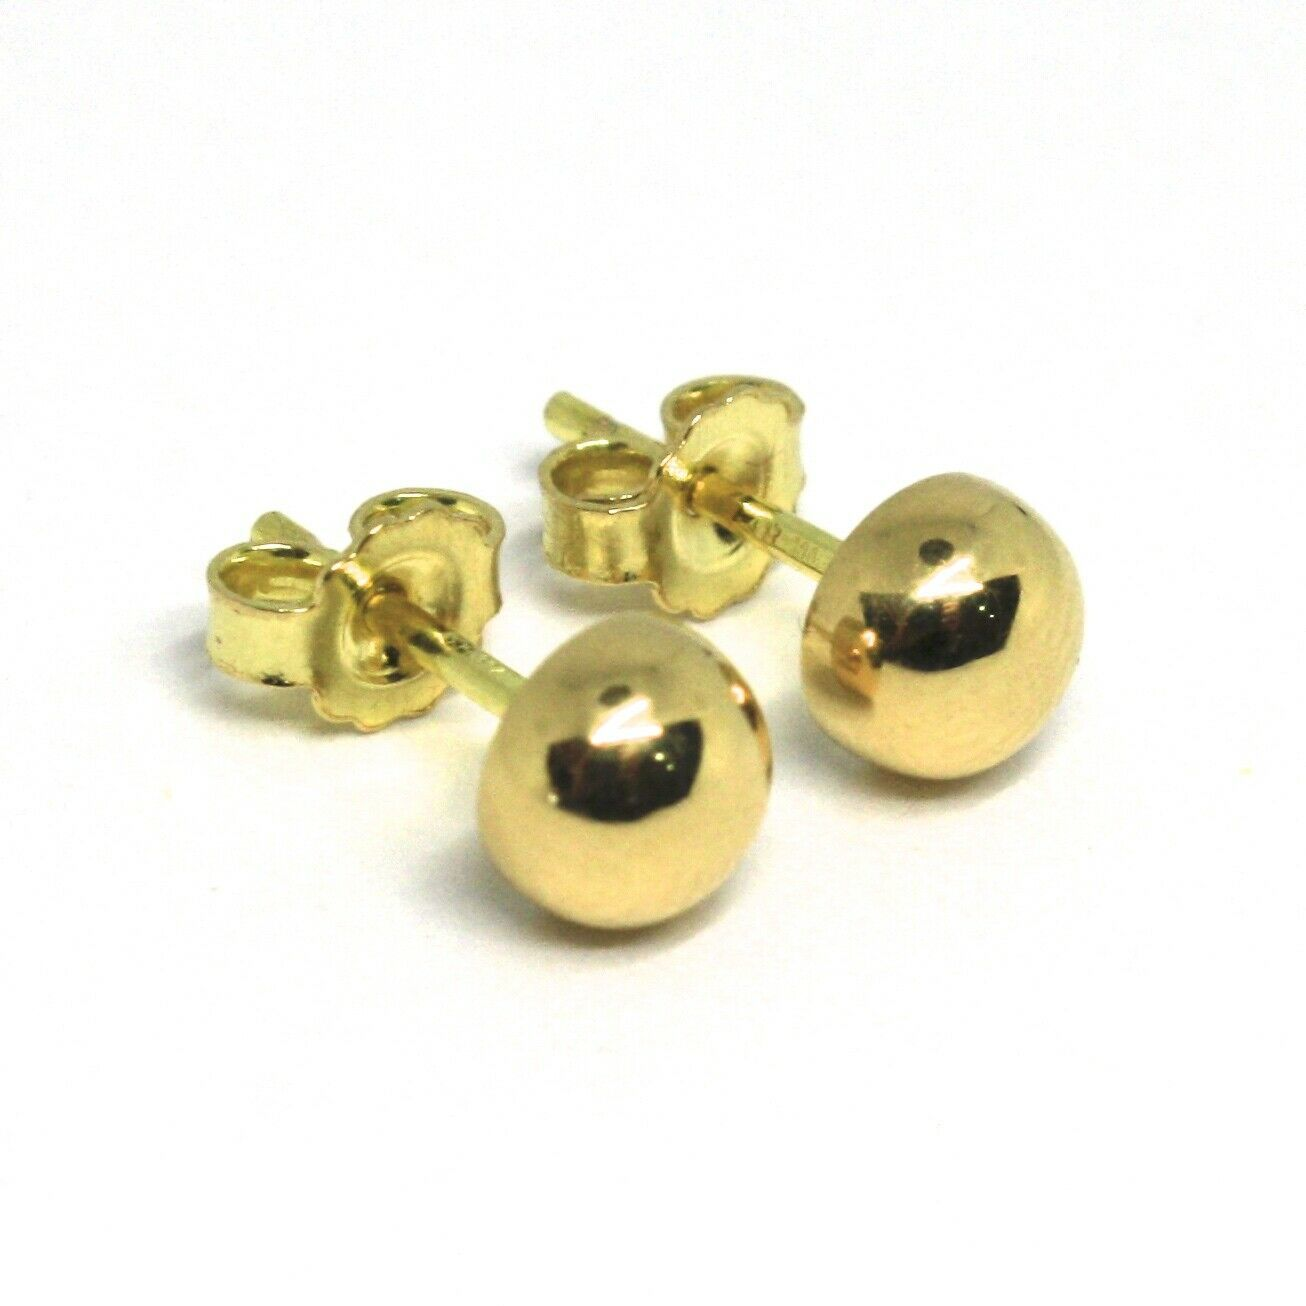 "18K YELLOW GOLD EARRINGS, MINI HALF SPHERE, DIAMETER 5 MM, 0.2"", MADE IN ITALY"